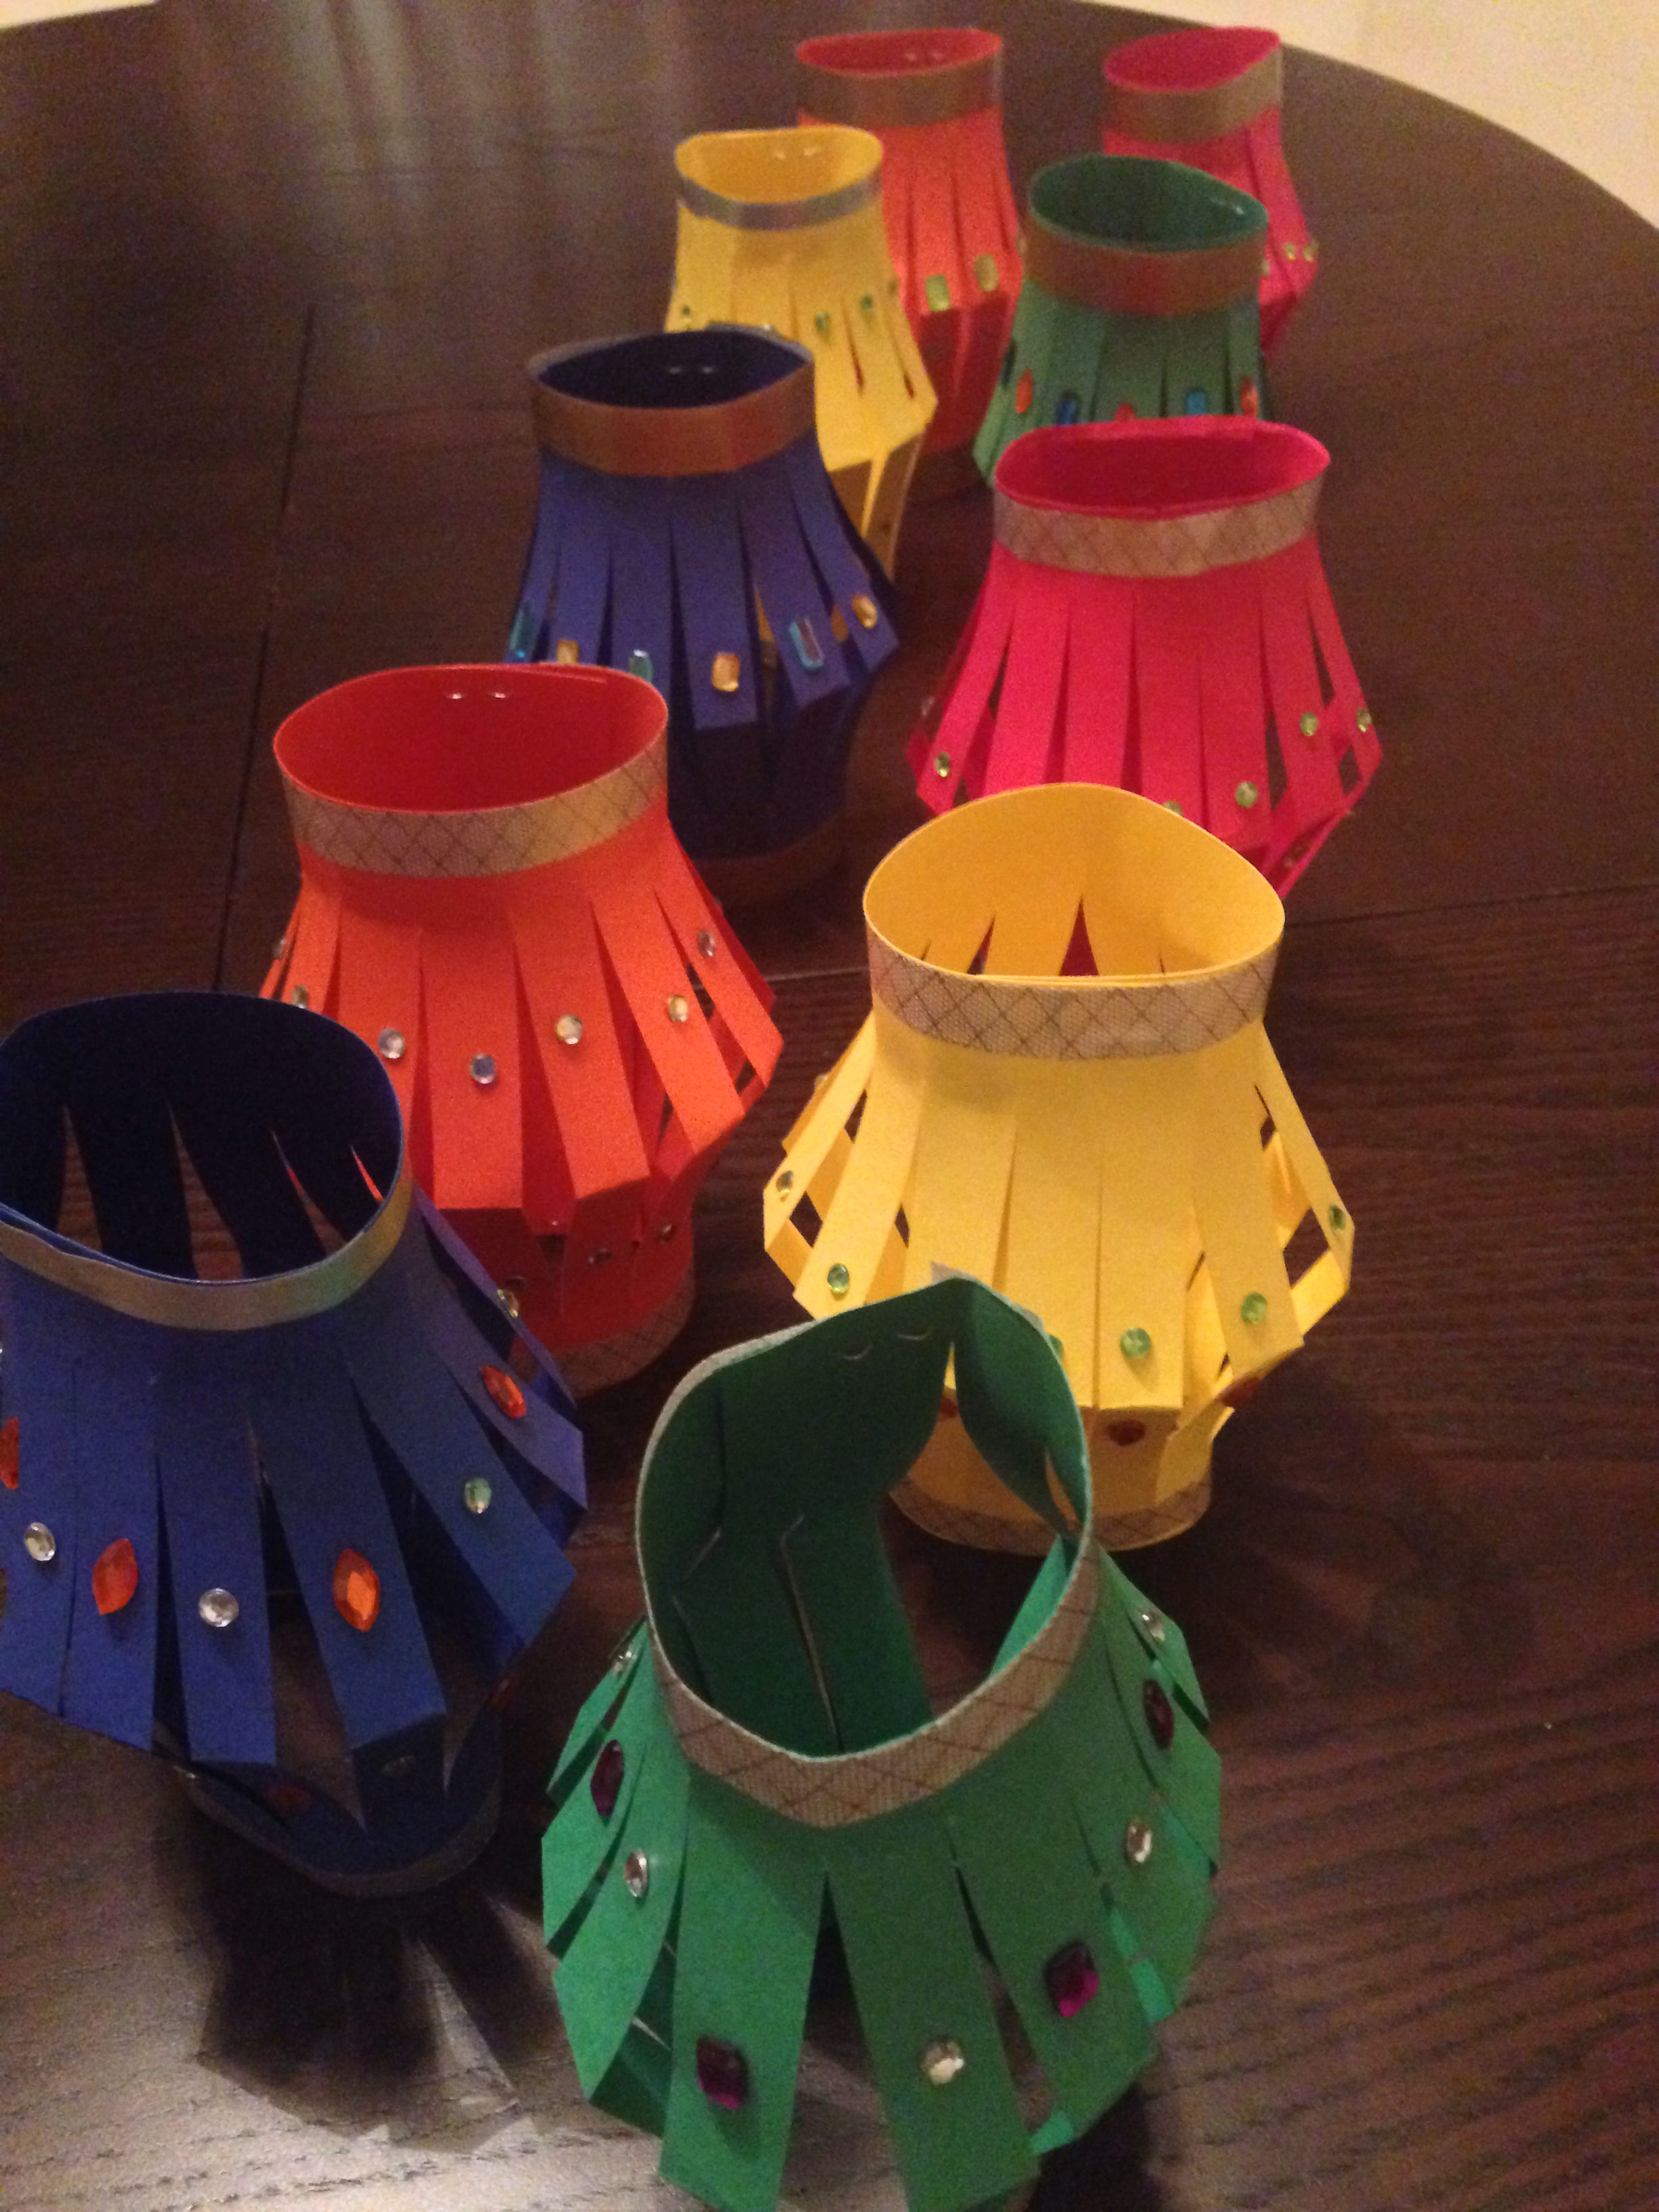 Christmas crafts for kids is a great way to keep kids busy during the cold winter season. Paper Lanterns For Diwai Fun Craft Project With Kids Diy Craftwithkids Diwali Activities India Crafts Diwali Craft